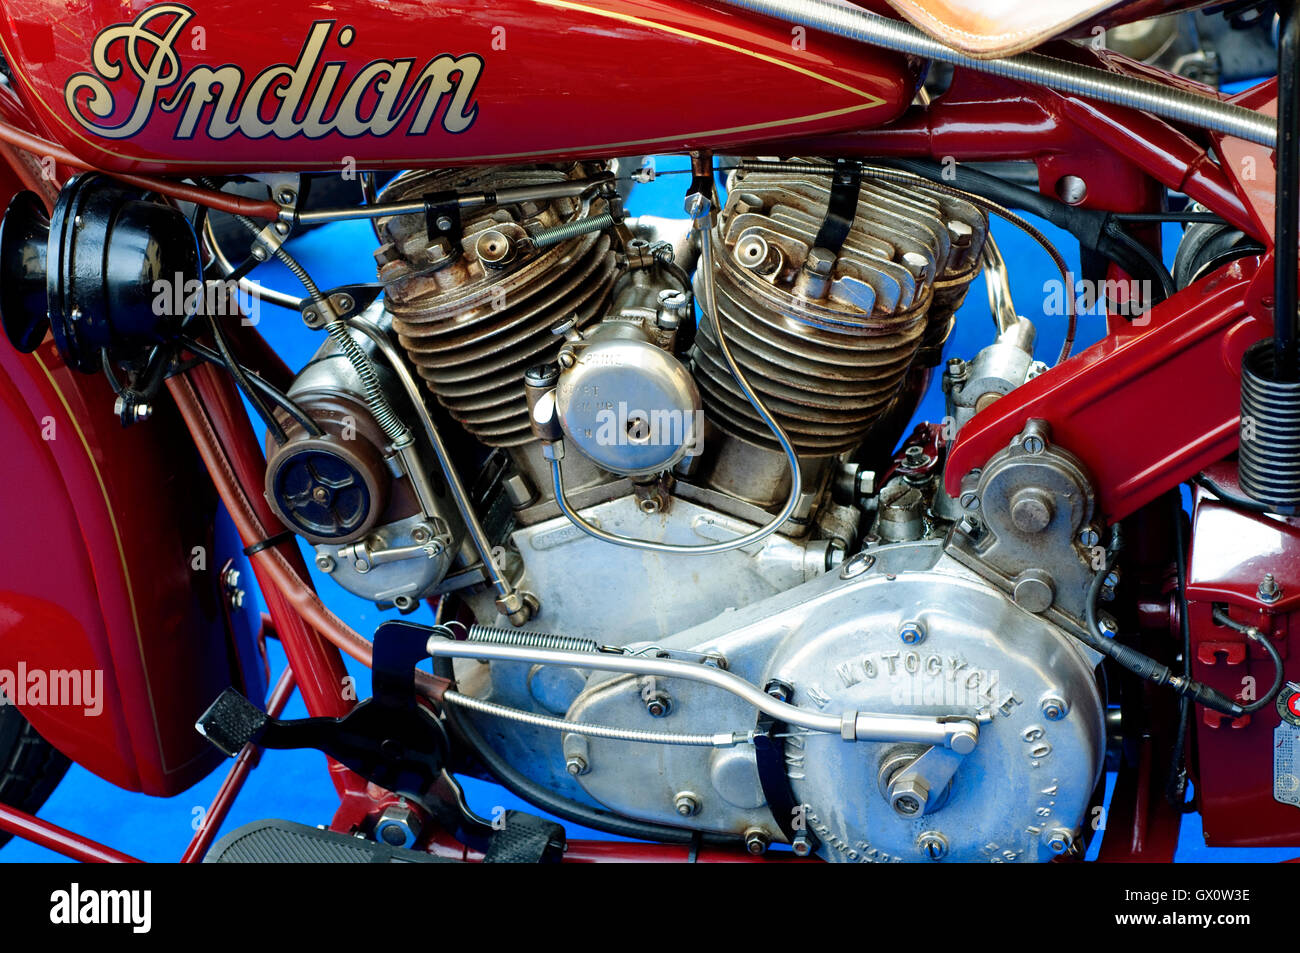 1930 Indian Scout Motorcycle. Classic American Motorcycle - Stock Image